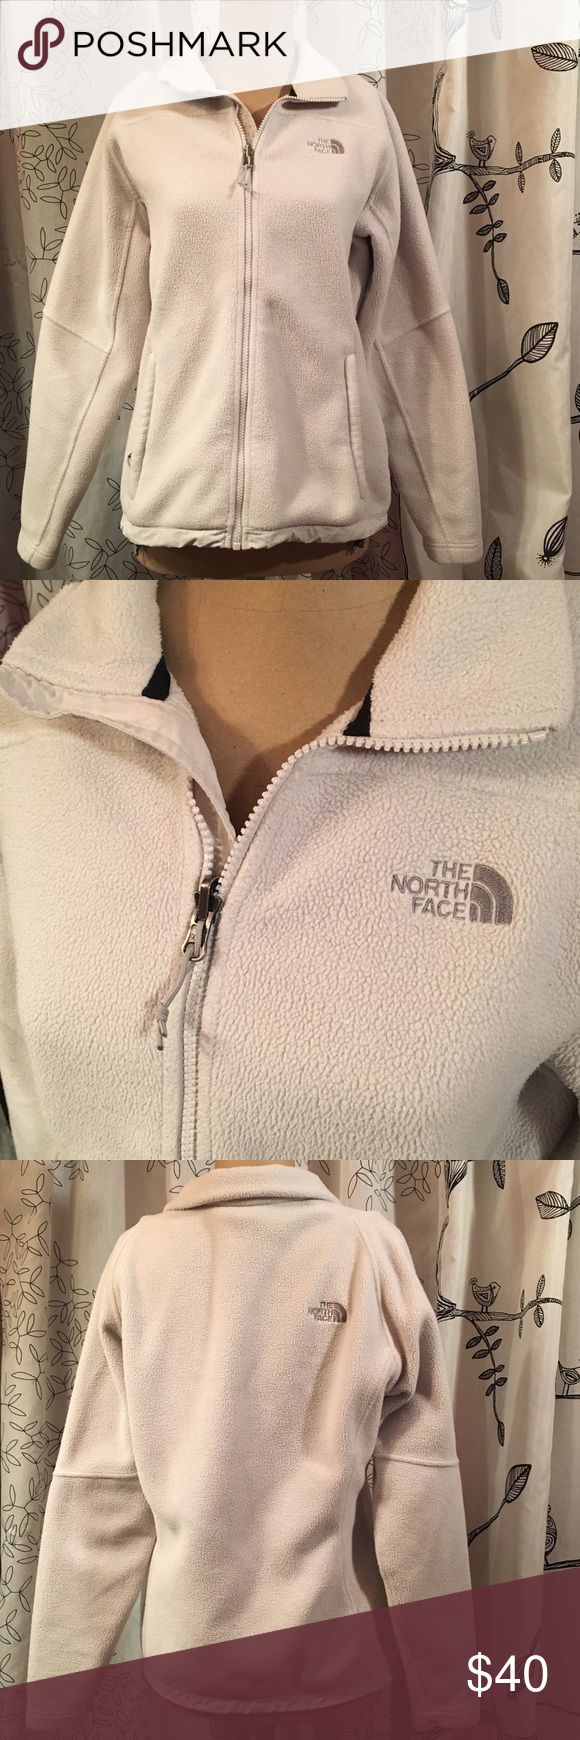 The North Face White Polartec Excellent used condition | M | White  Perfect time to buy it!! End-Of-Season sale price!! The North Face Jackets & Coats